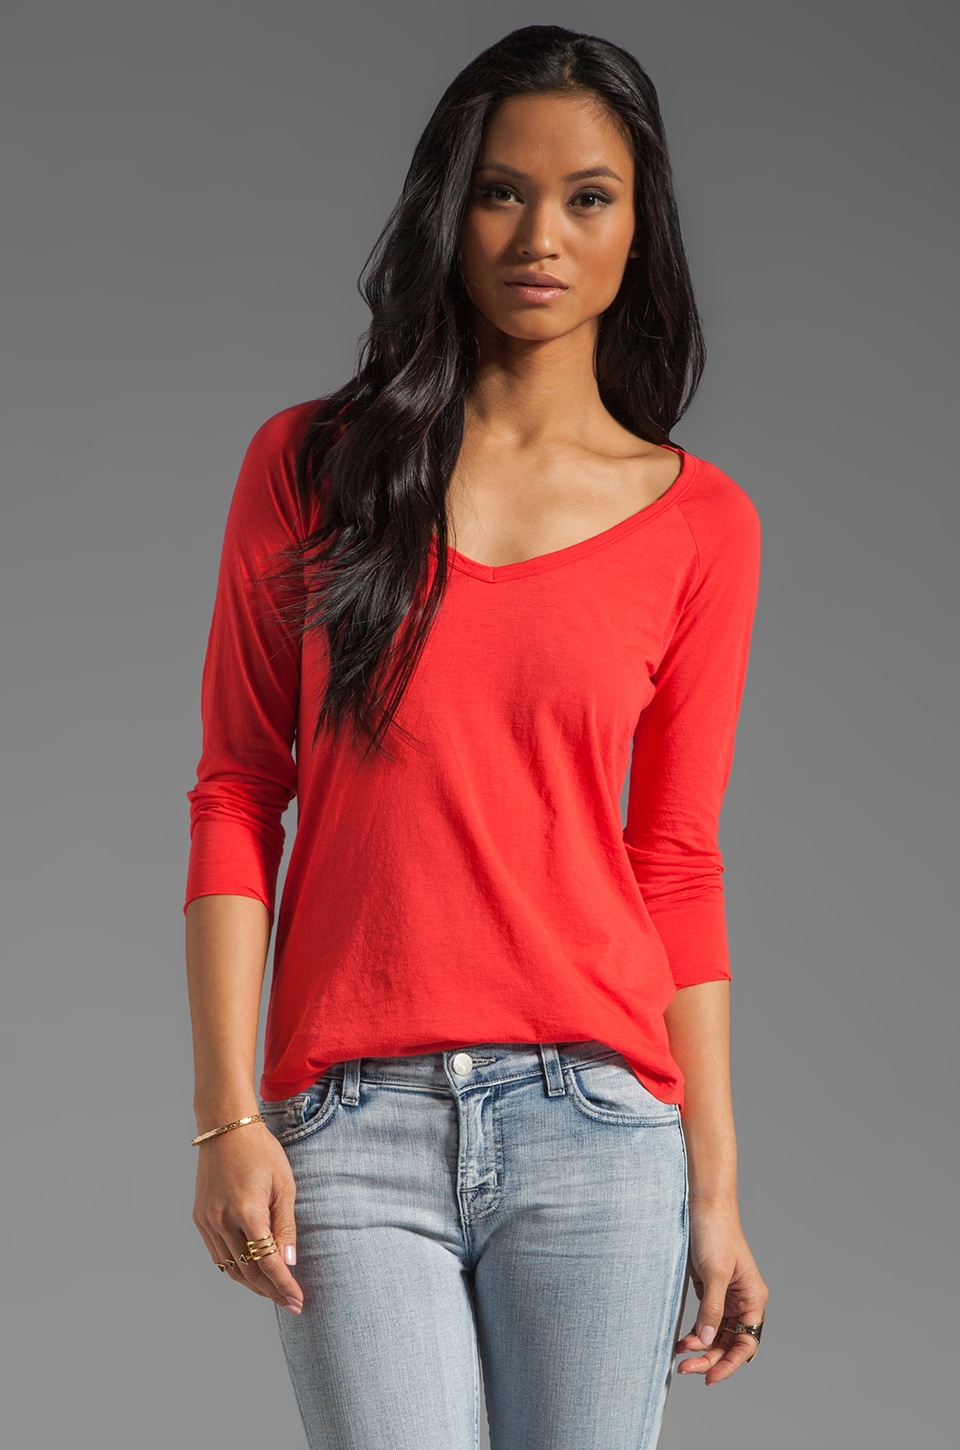 Velvet by Graham & Spencer Sheer Jersey Jalena Top in Popsicle